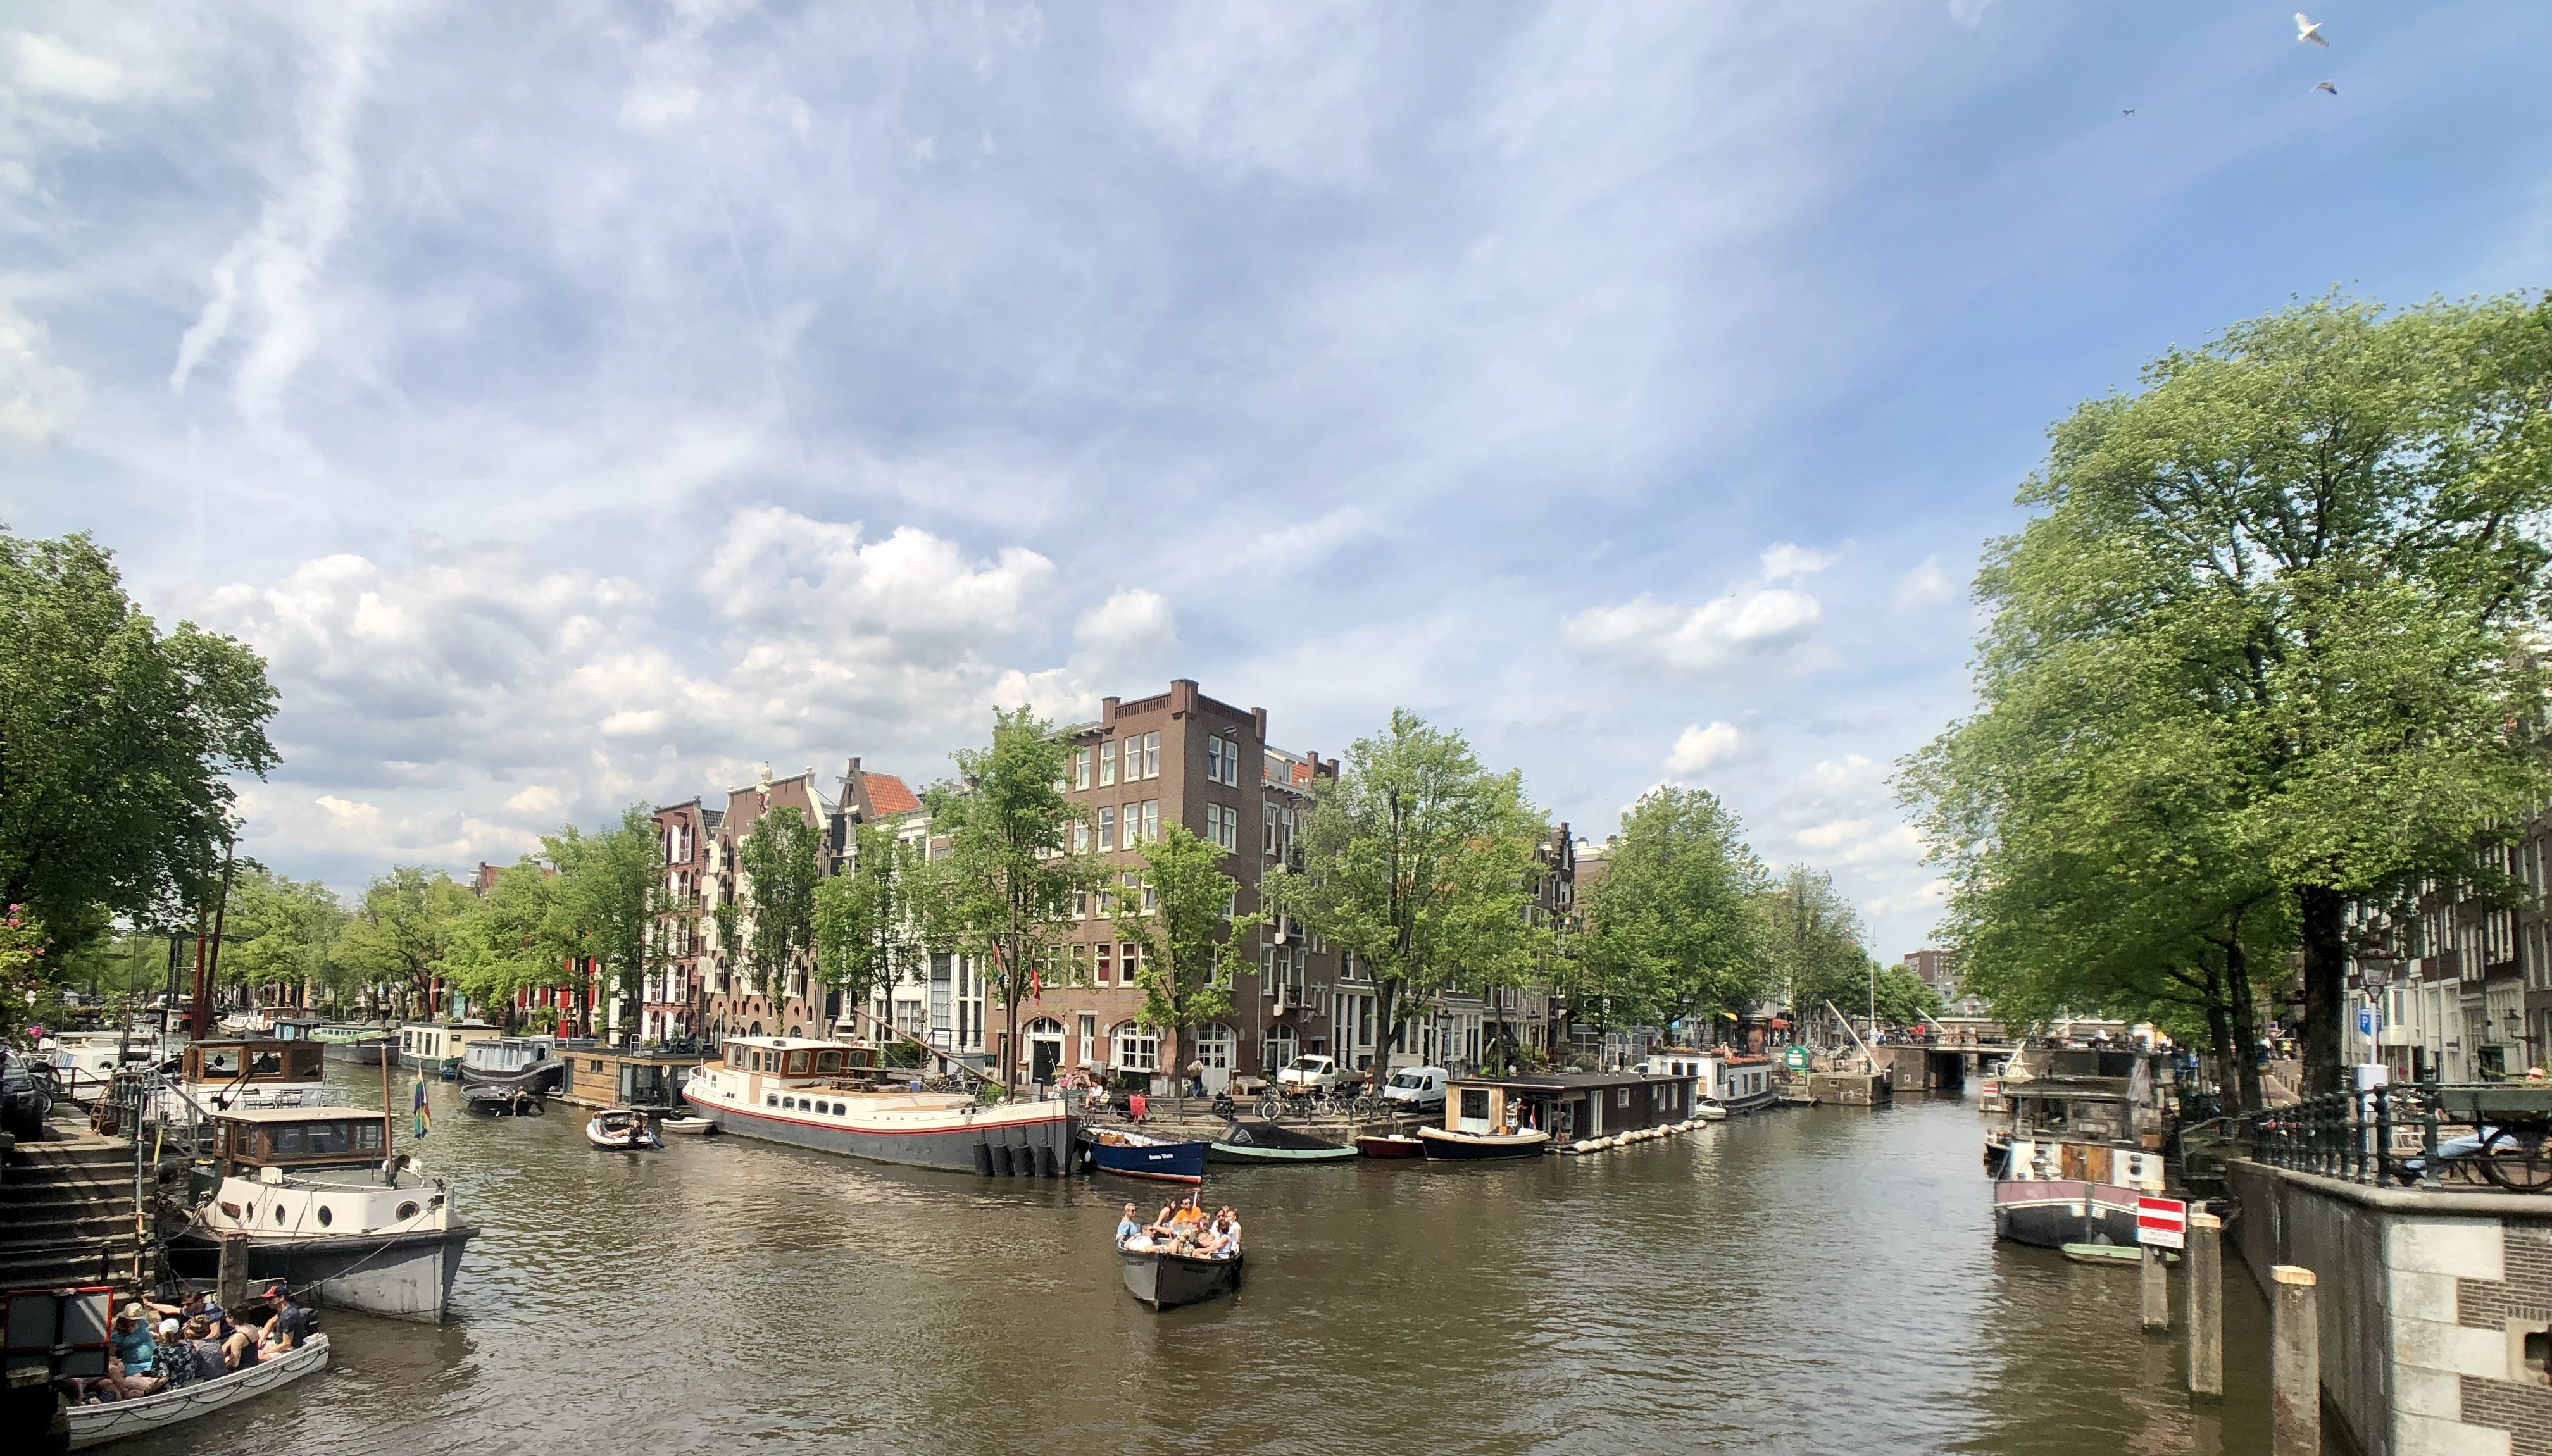 Getting Lost in Amsterdam